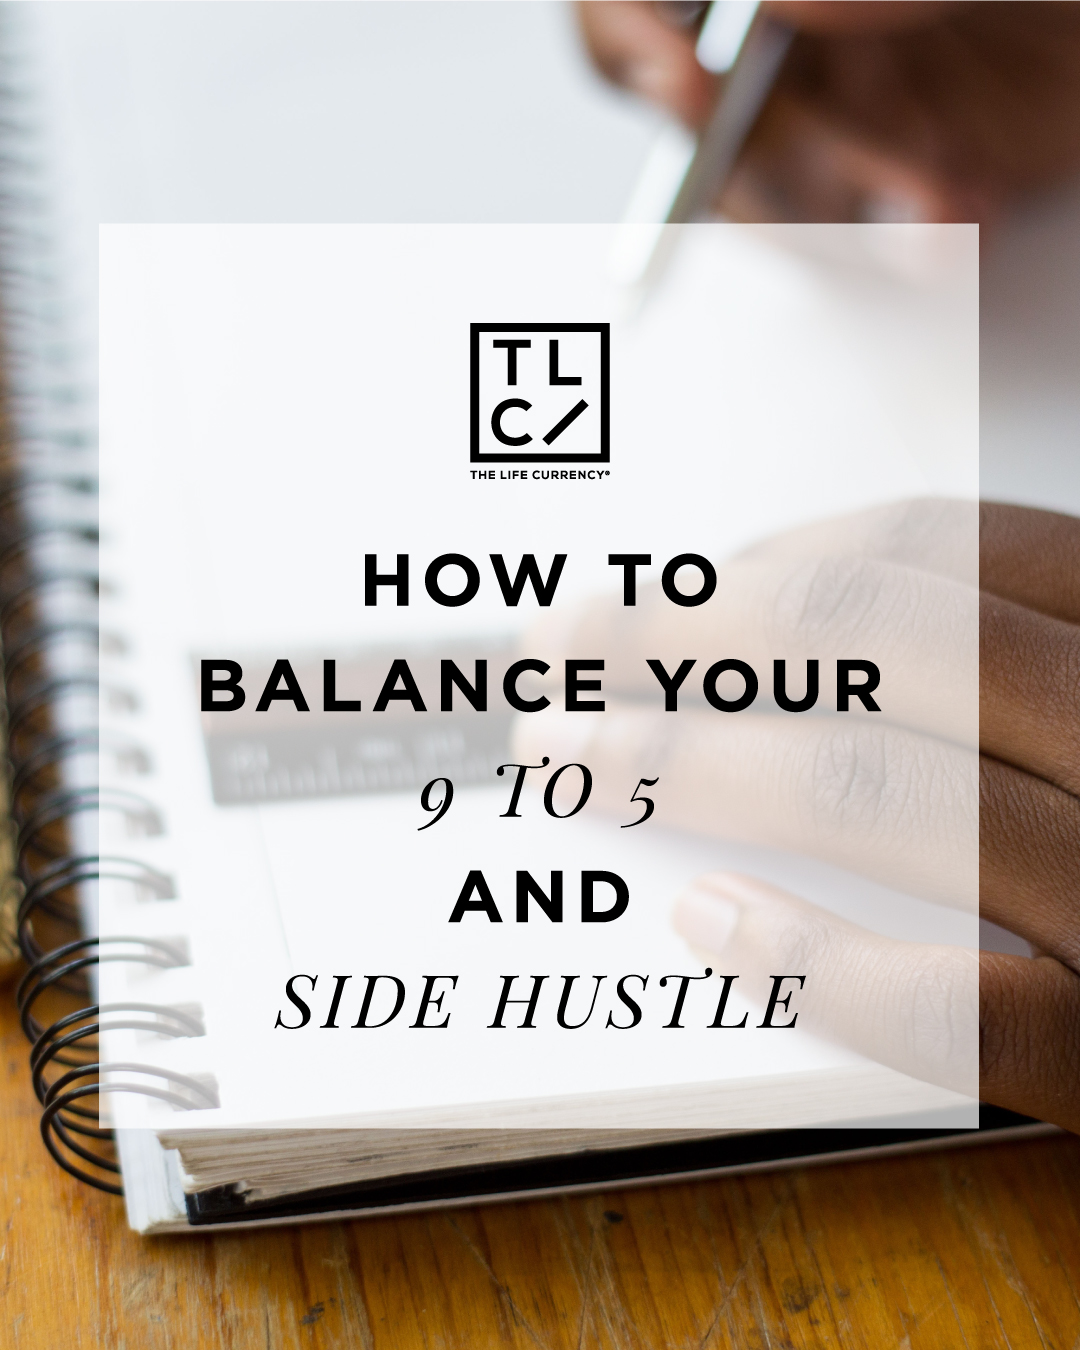 Tips for Balancing Your 9-5 & Your Side Hustle